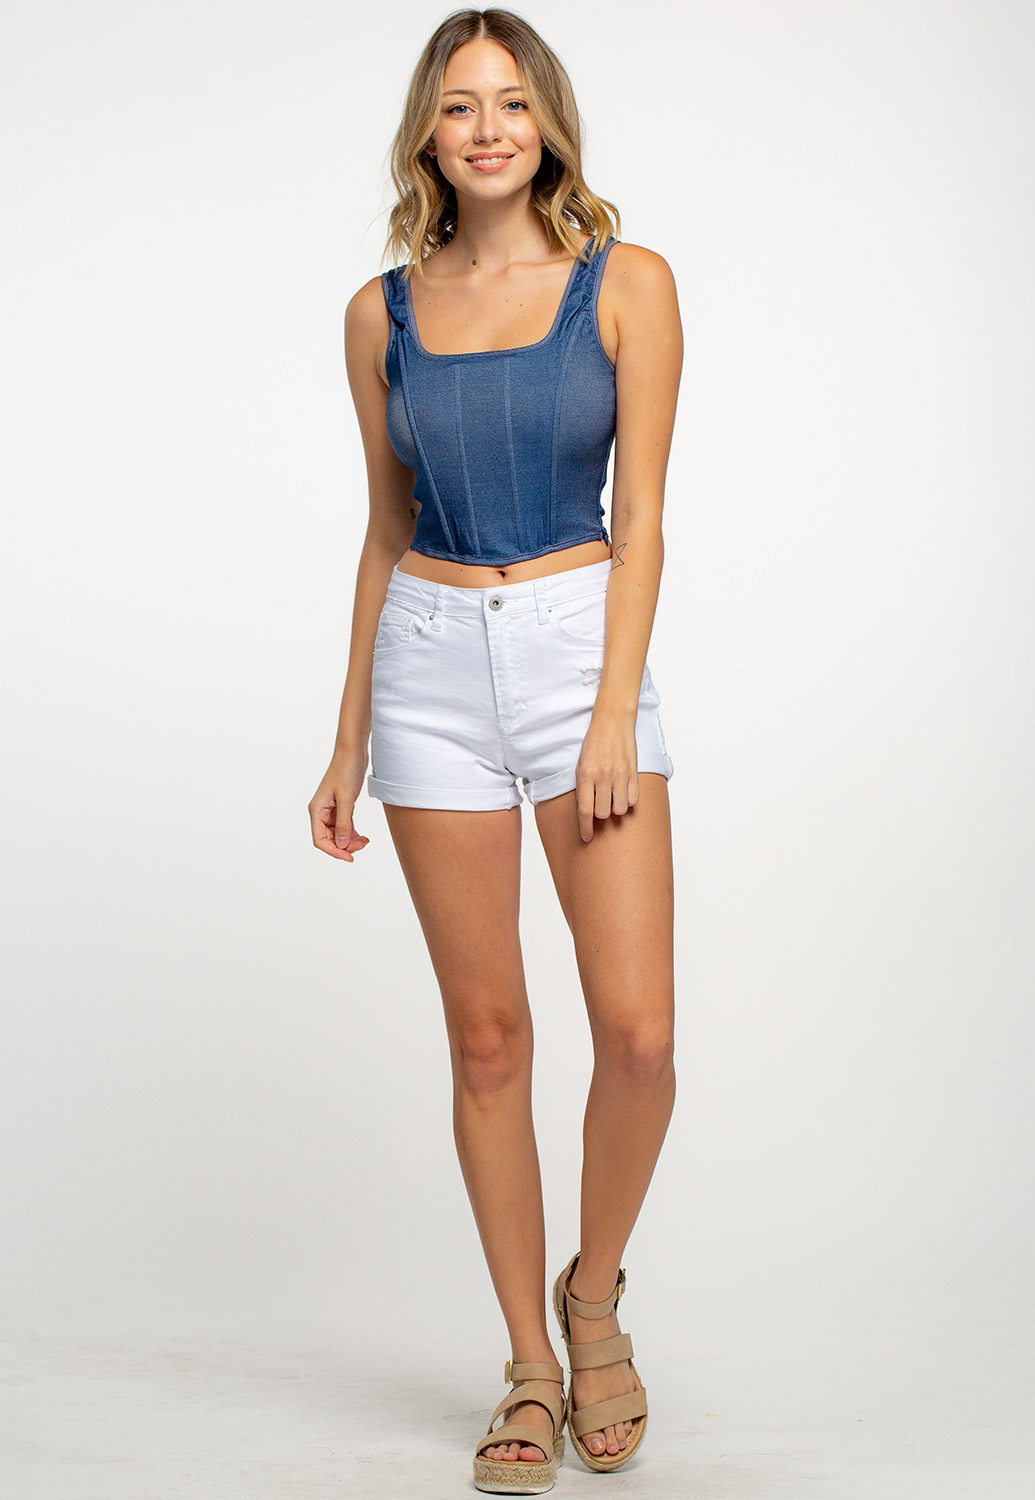 Square Neck Fitted Crop Top With Side Zip Up